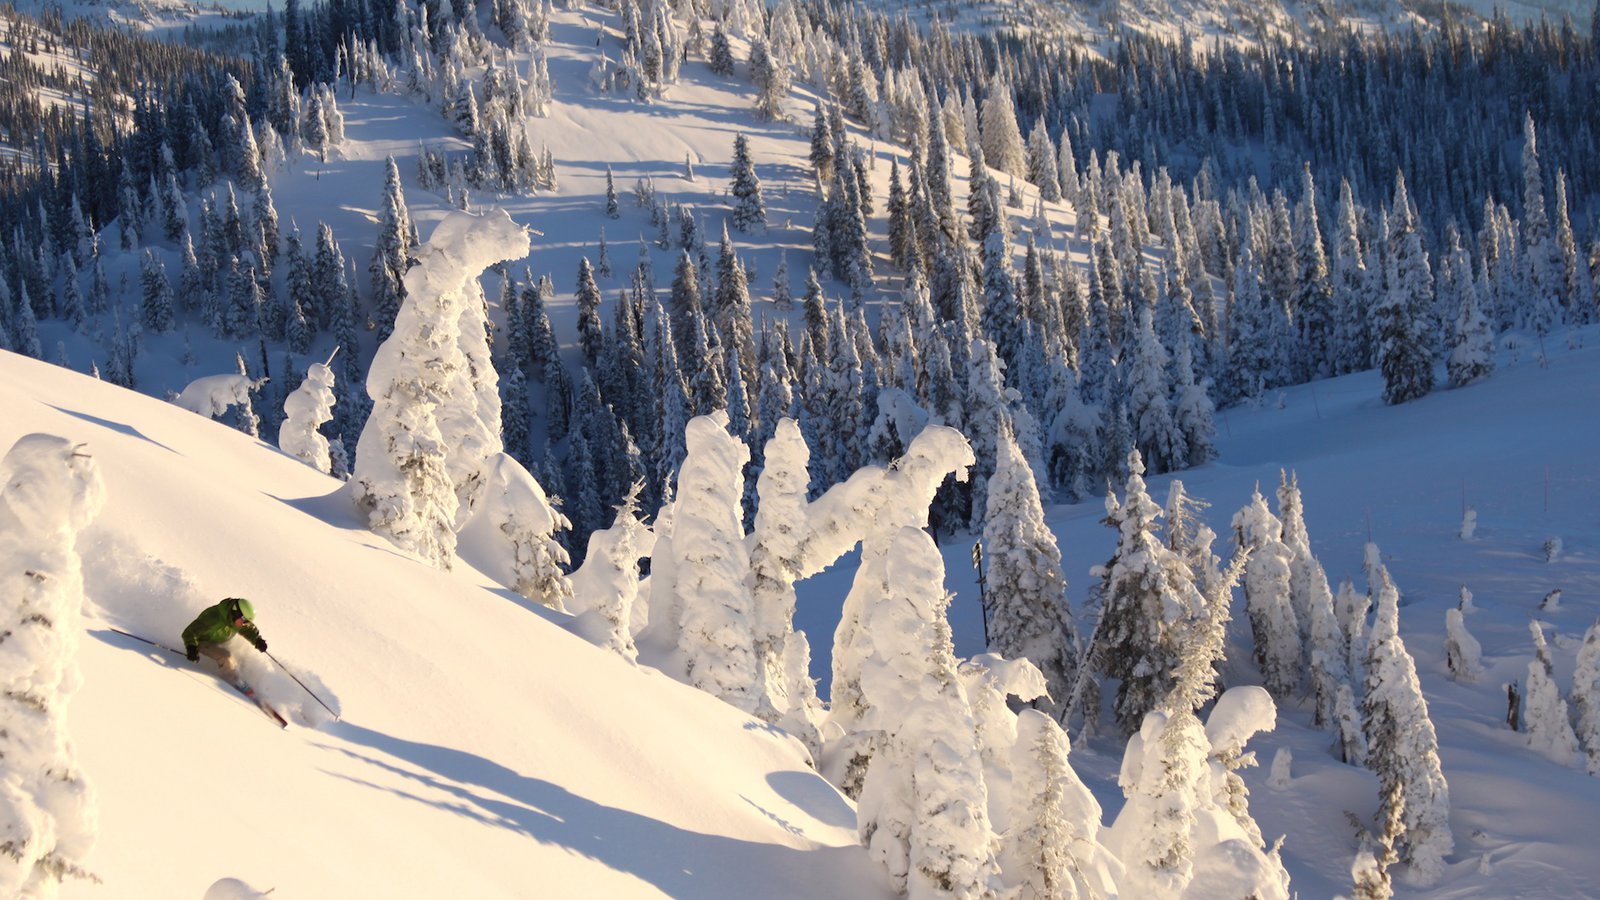 whitefish mountain ski resort pictures: view photos & images of